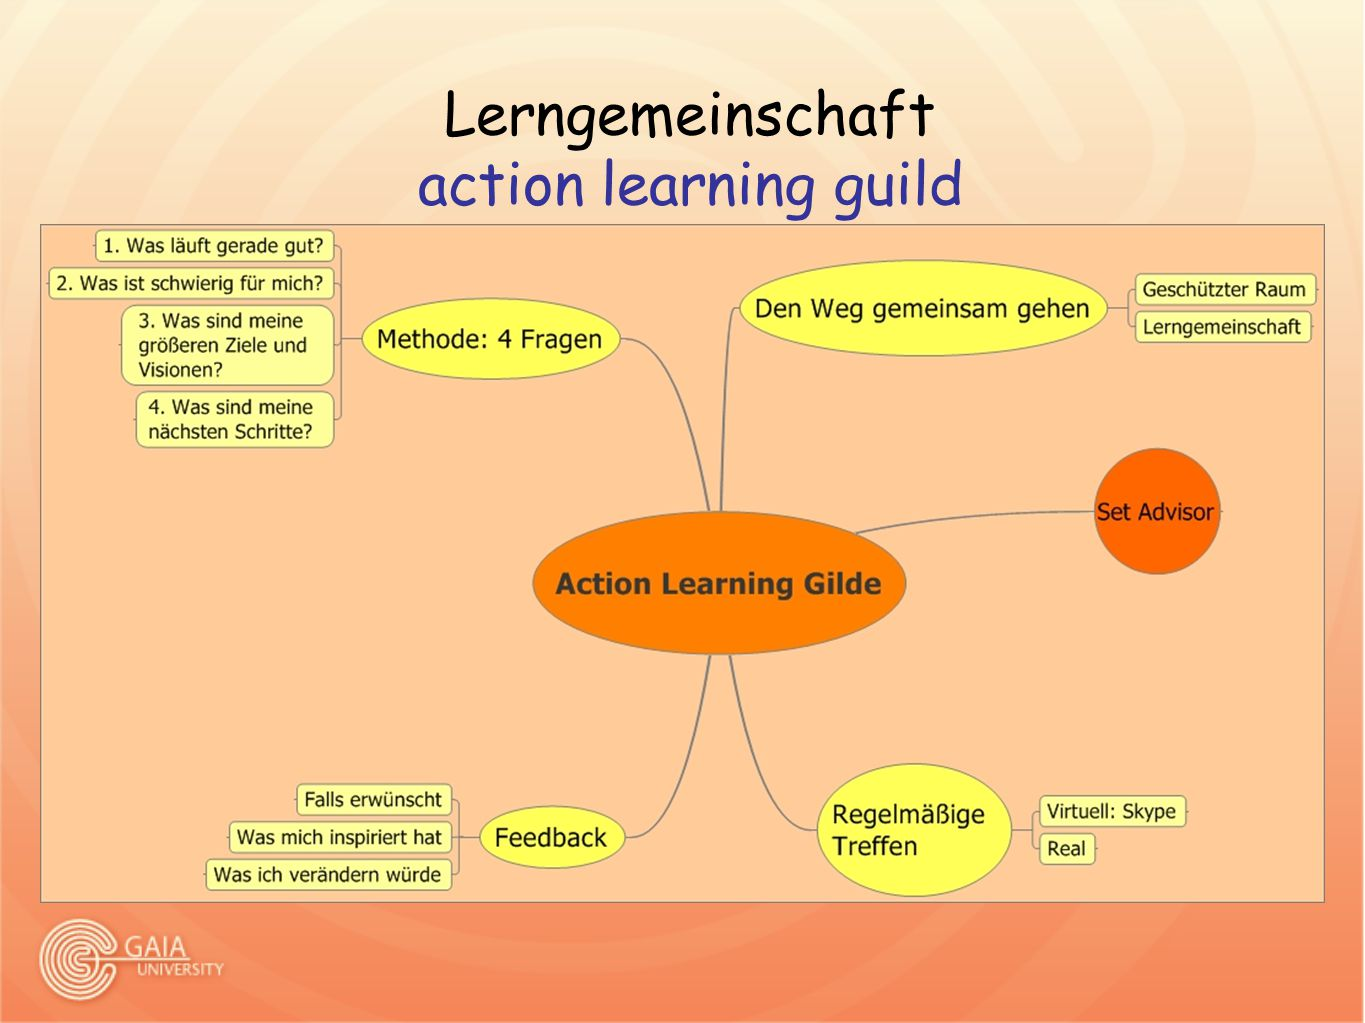 Lerngemeinschaft action learning guild